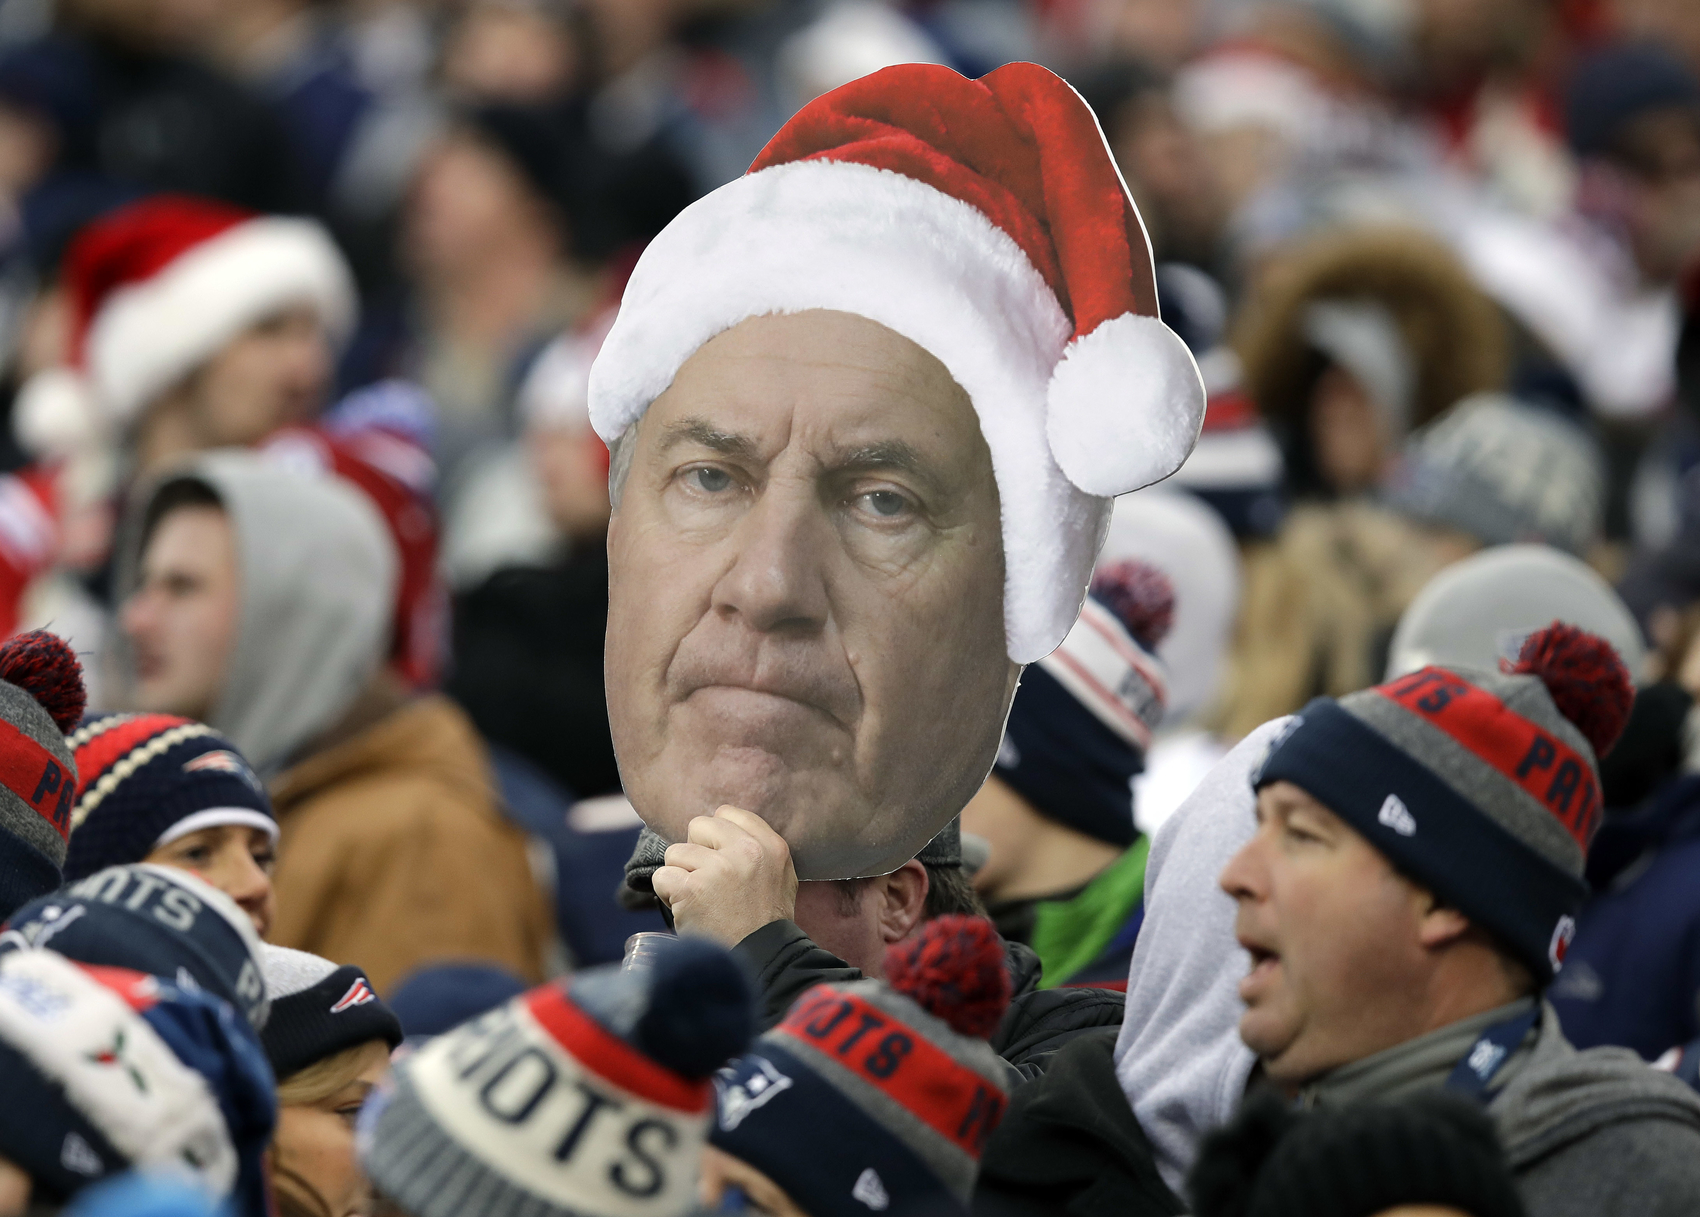 A fan holds a photo of New England Patriots head coach Bill Belichick wearing a Christmas hat during the second half of an NFL football game between the Patriots and the Buffalo Bills, Sunday, Dec. 24, 2017, in Foxborough, Mass. (AP Photo/Charles Krupa)